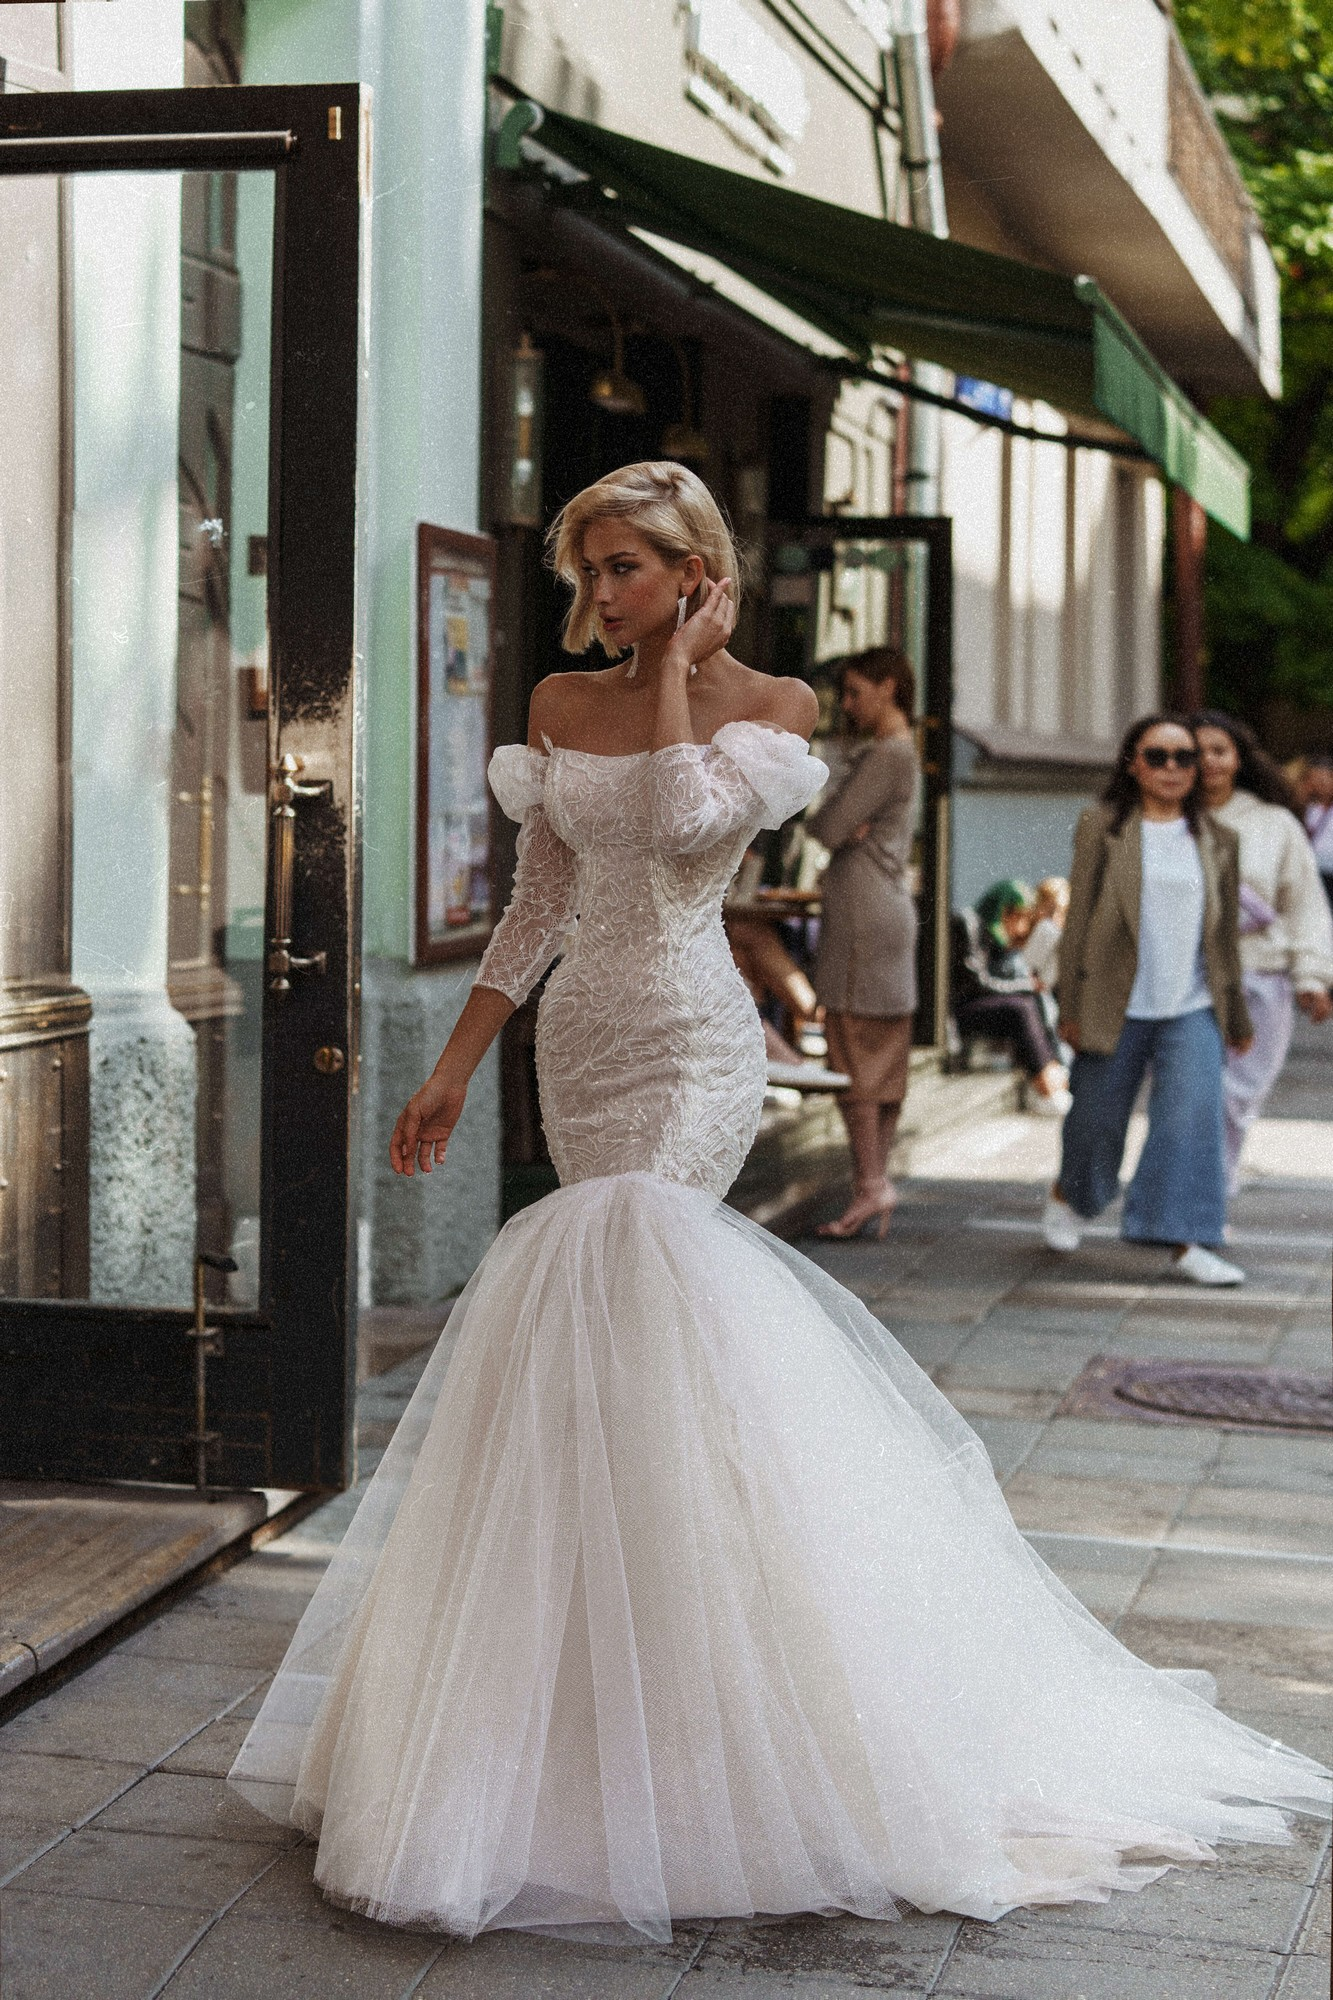 Arlit from the Oh My Bride! Collection by Rara Avis